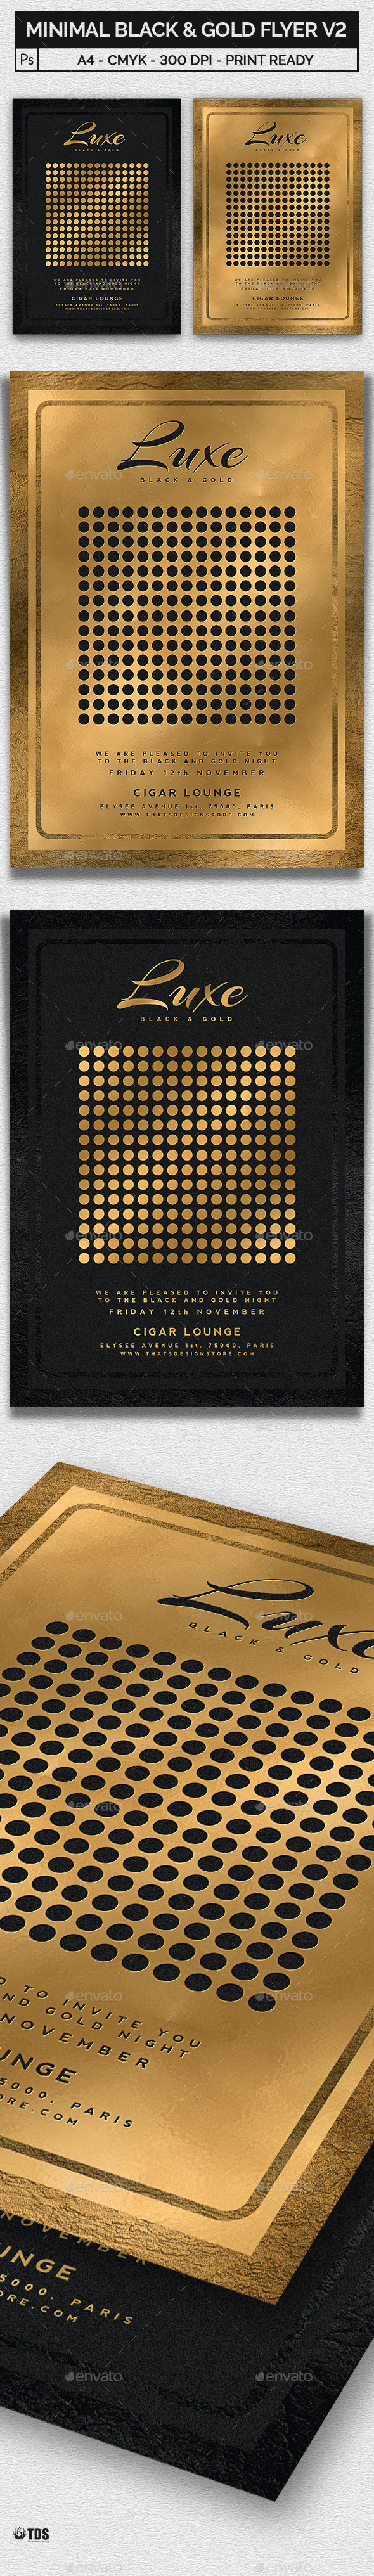 Minimal Black and Gold Flyer Template V2 - Clubs & Parties Events